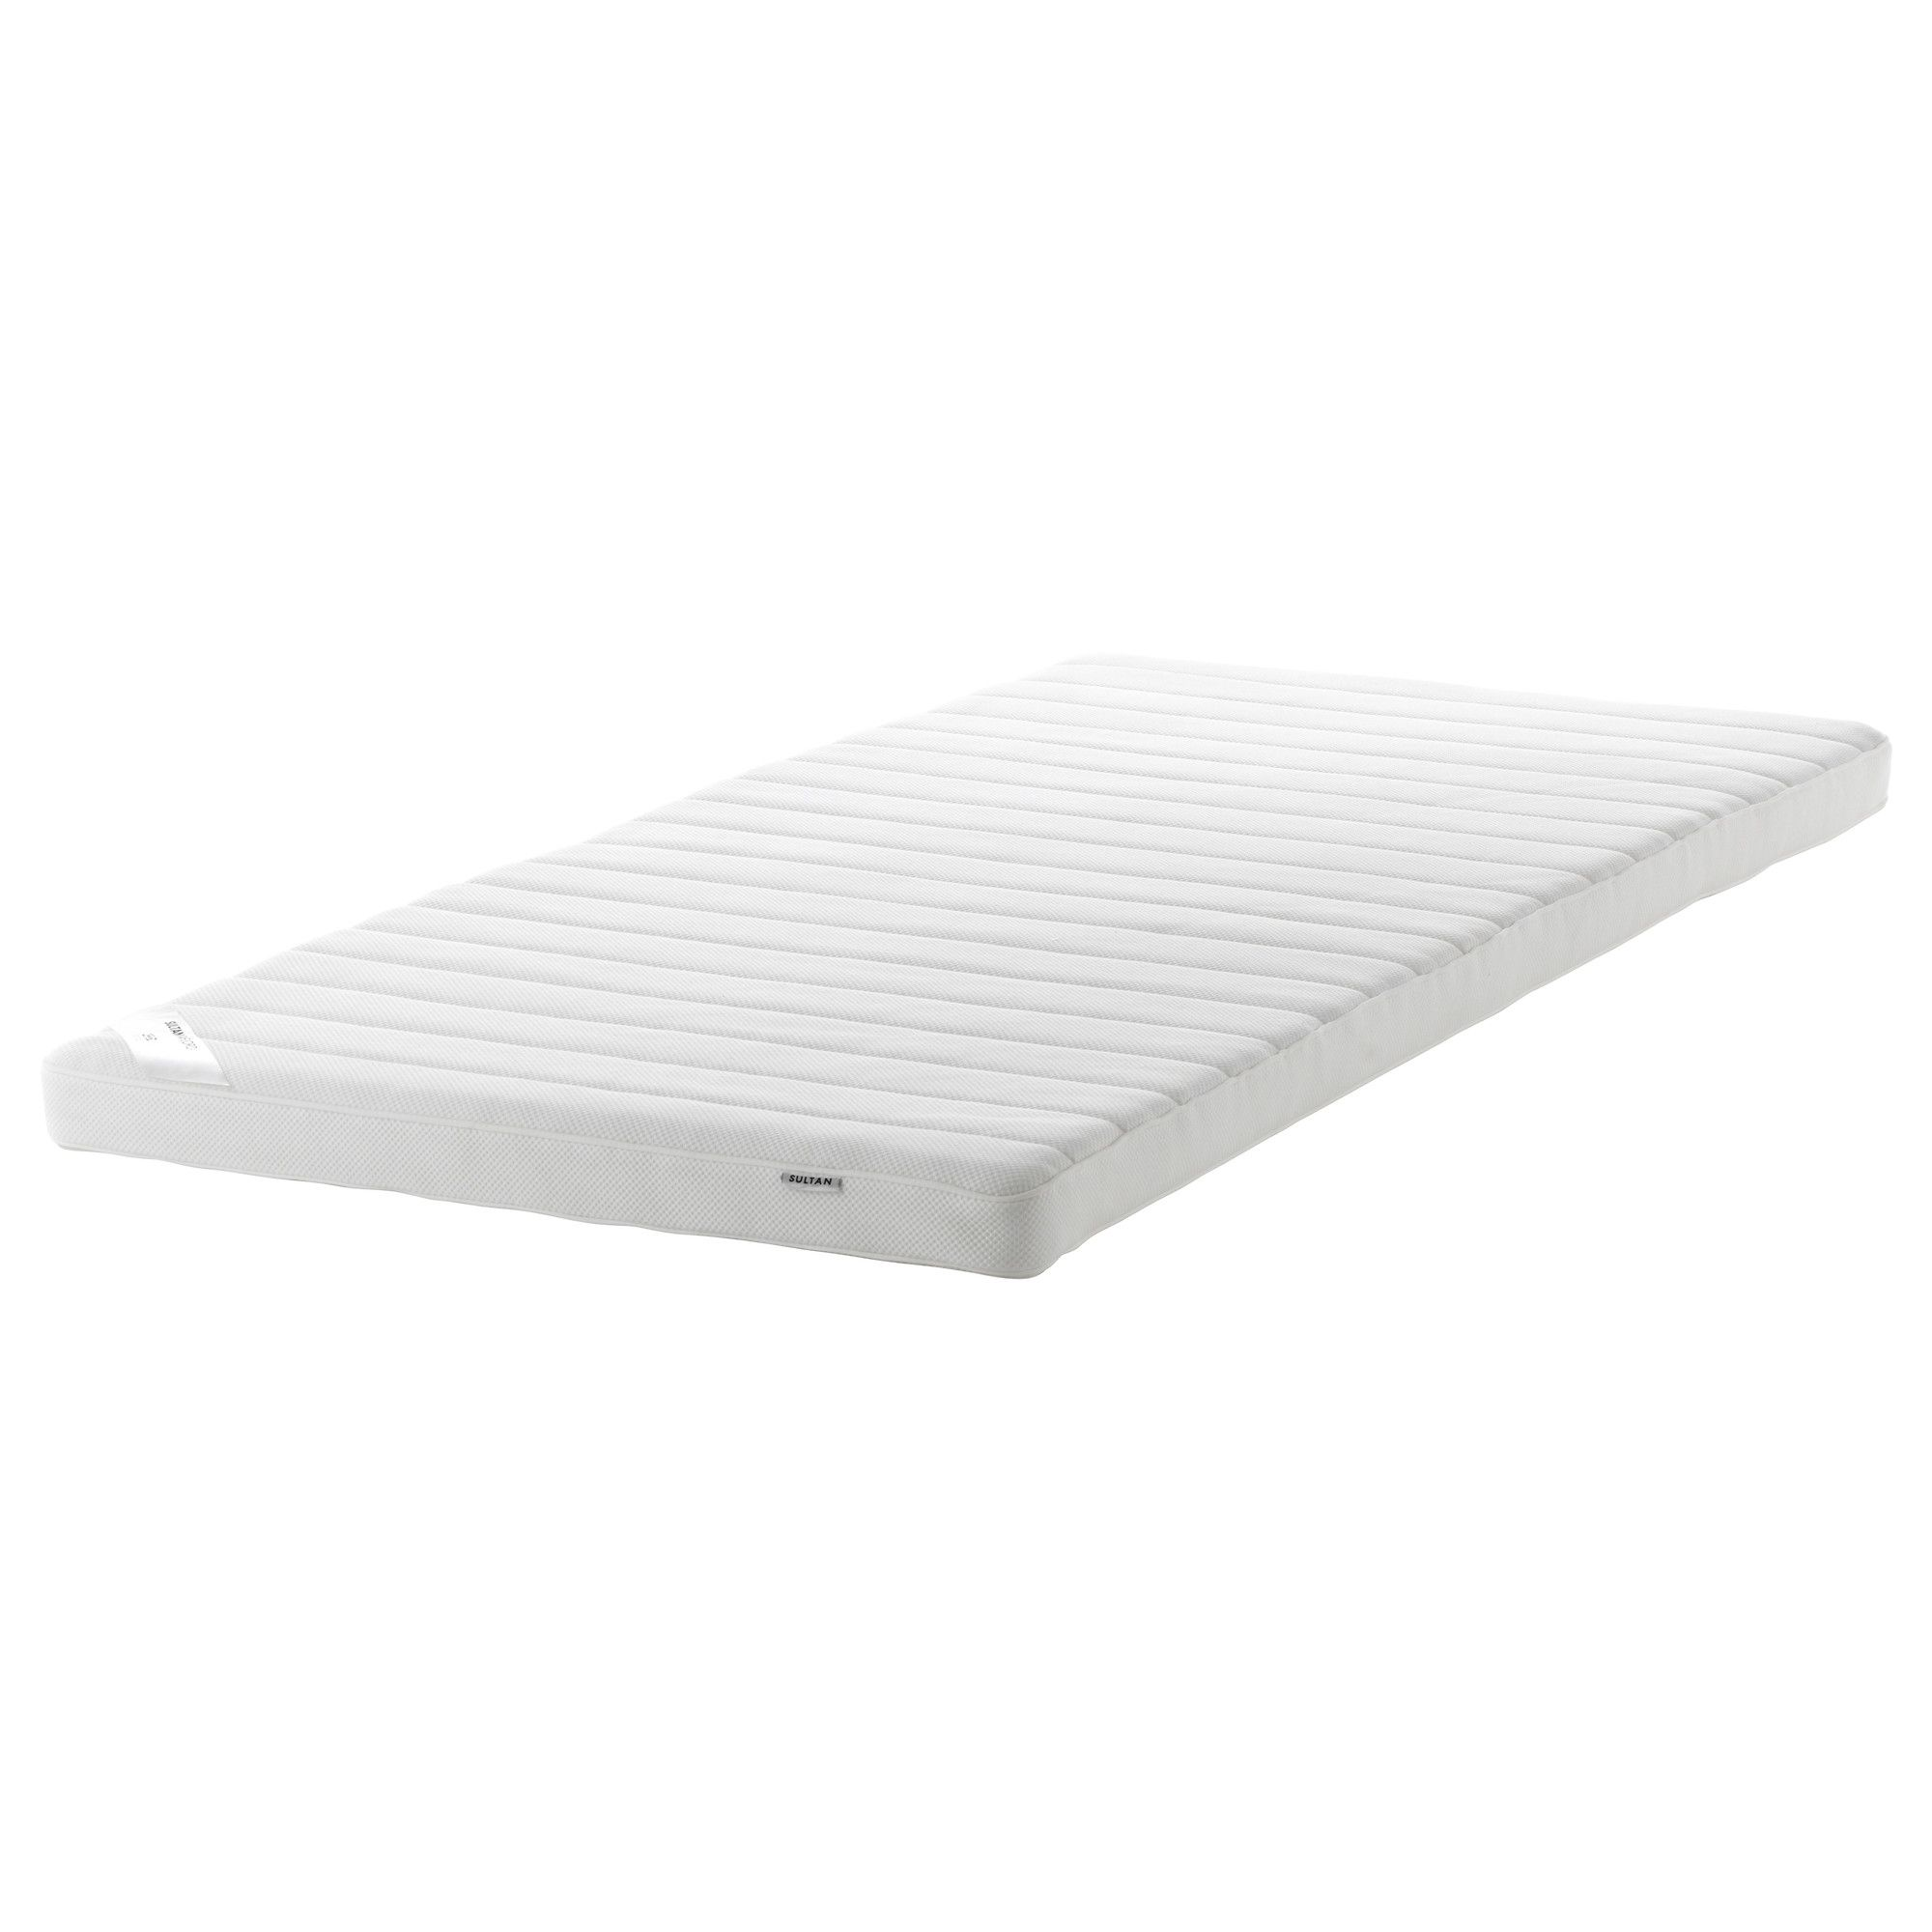 Pillow Top Sofa Bed Mattress Pad Sectional Ratings Hej Bei Ikea Österreich Living Room Inspiration